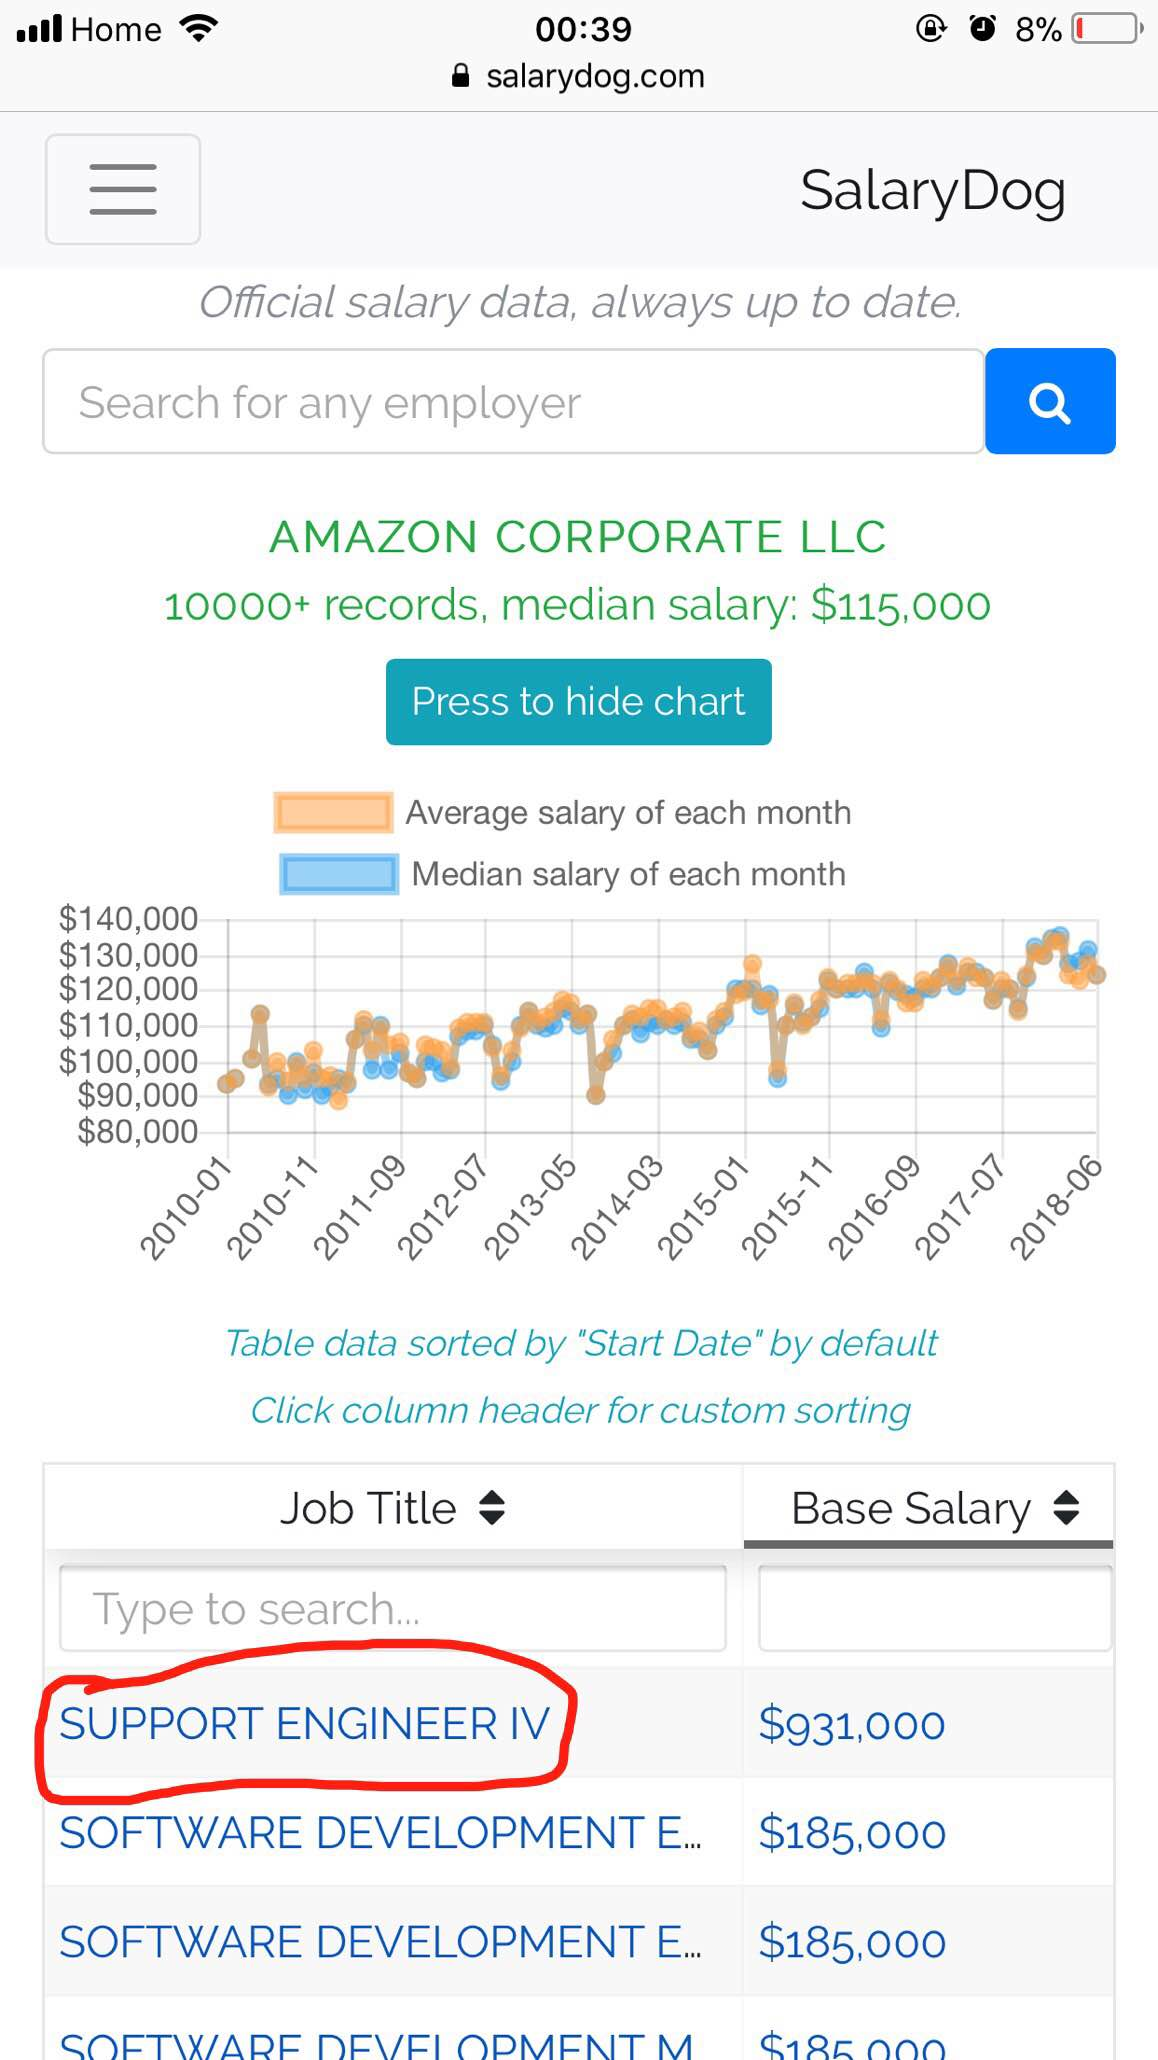 Compensation: Support engineer at Amazon makes 900k base